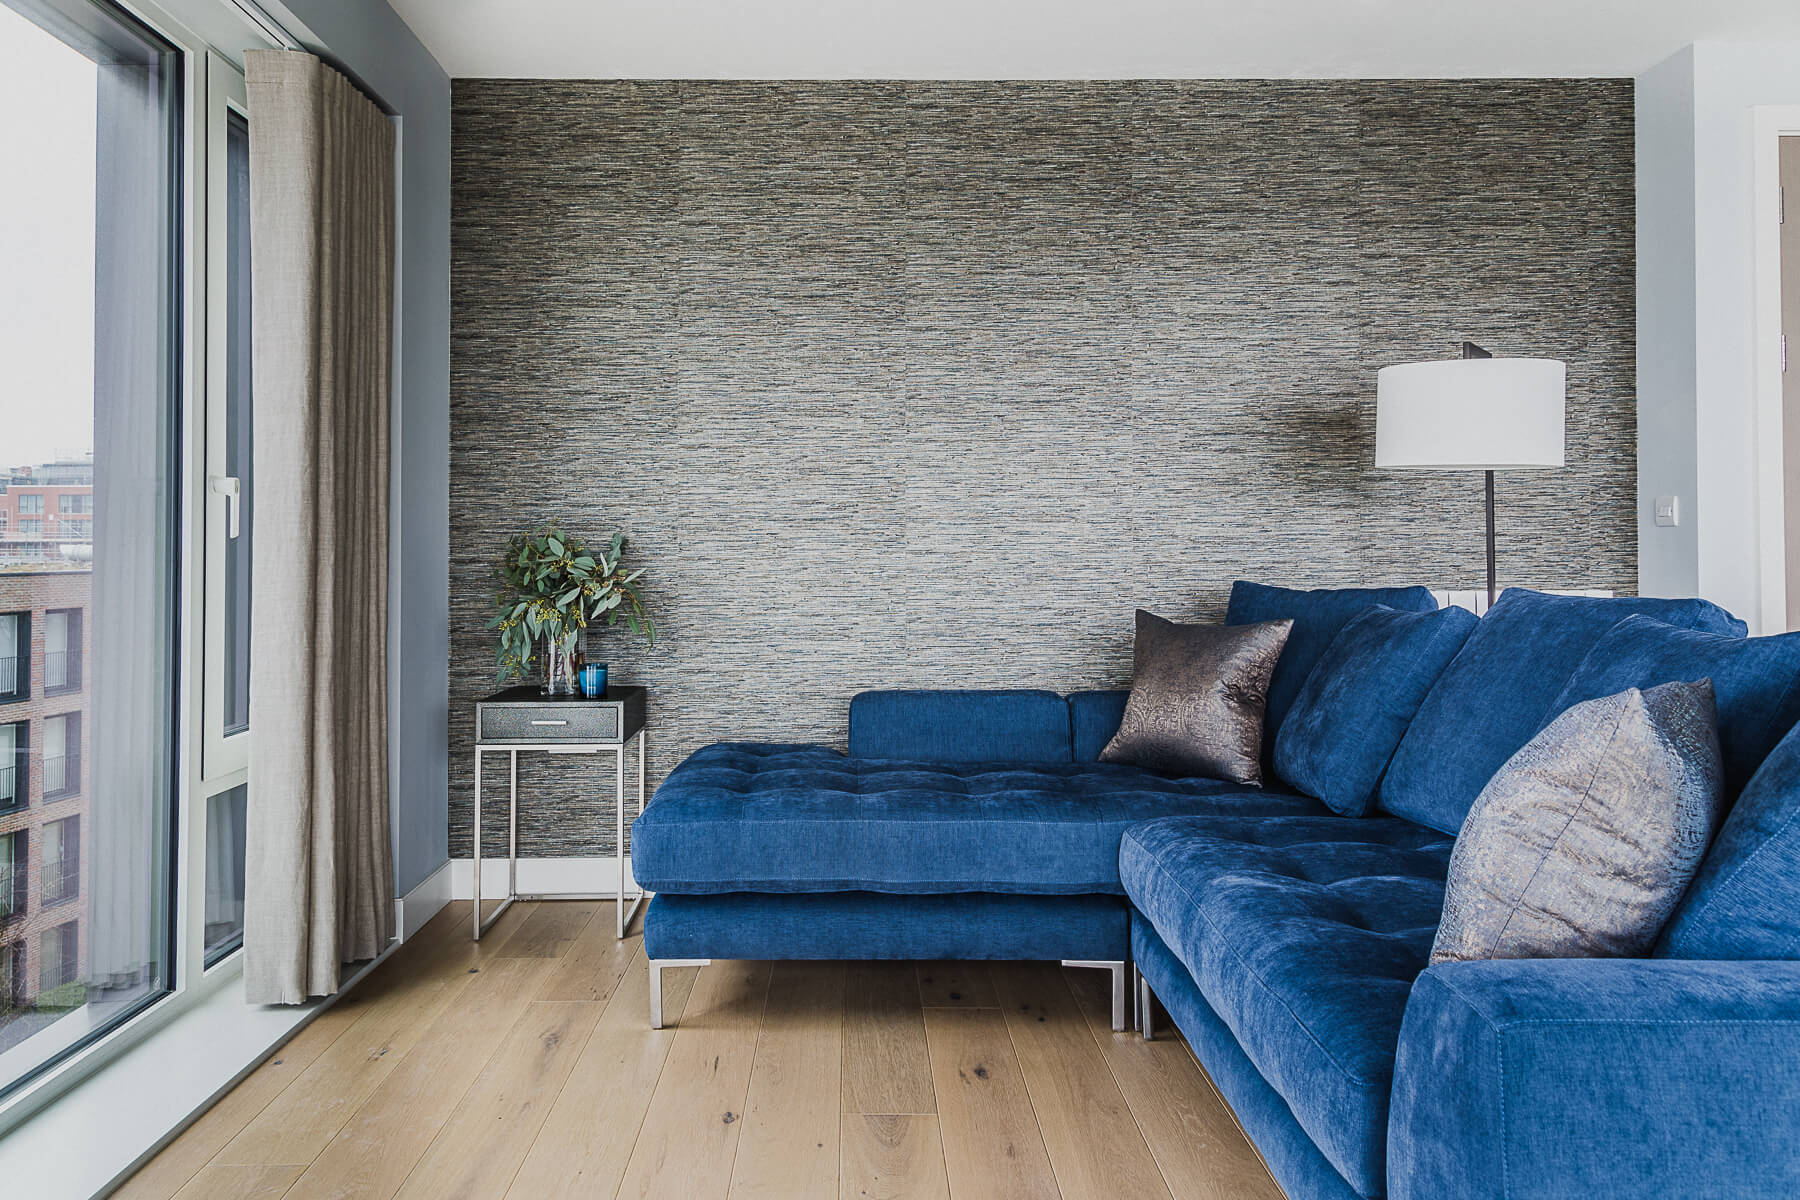 Royal Arsenal Woolwich Living area with textured wallcovering and blue sectional sofa with linen curtain